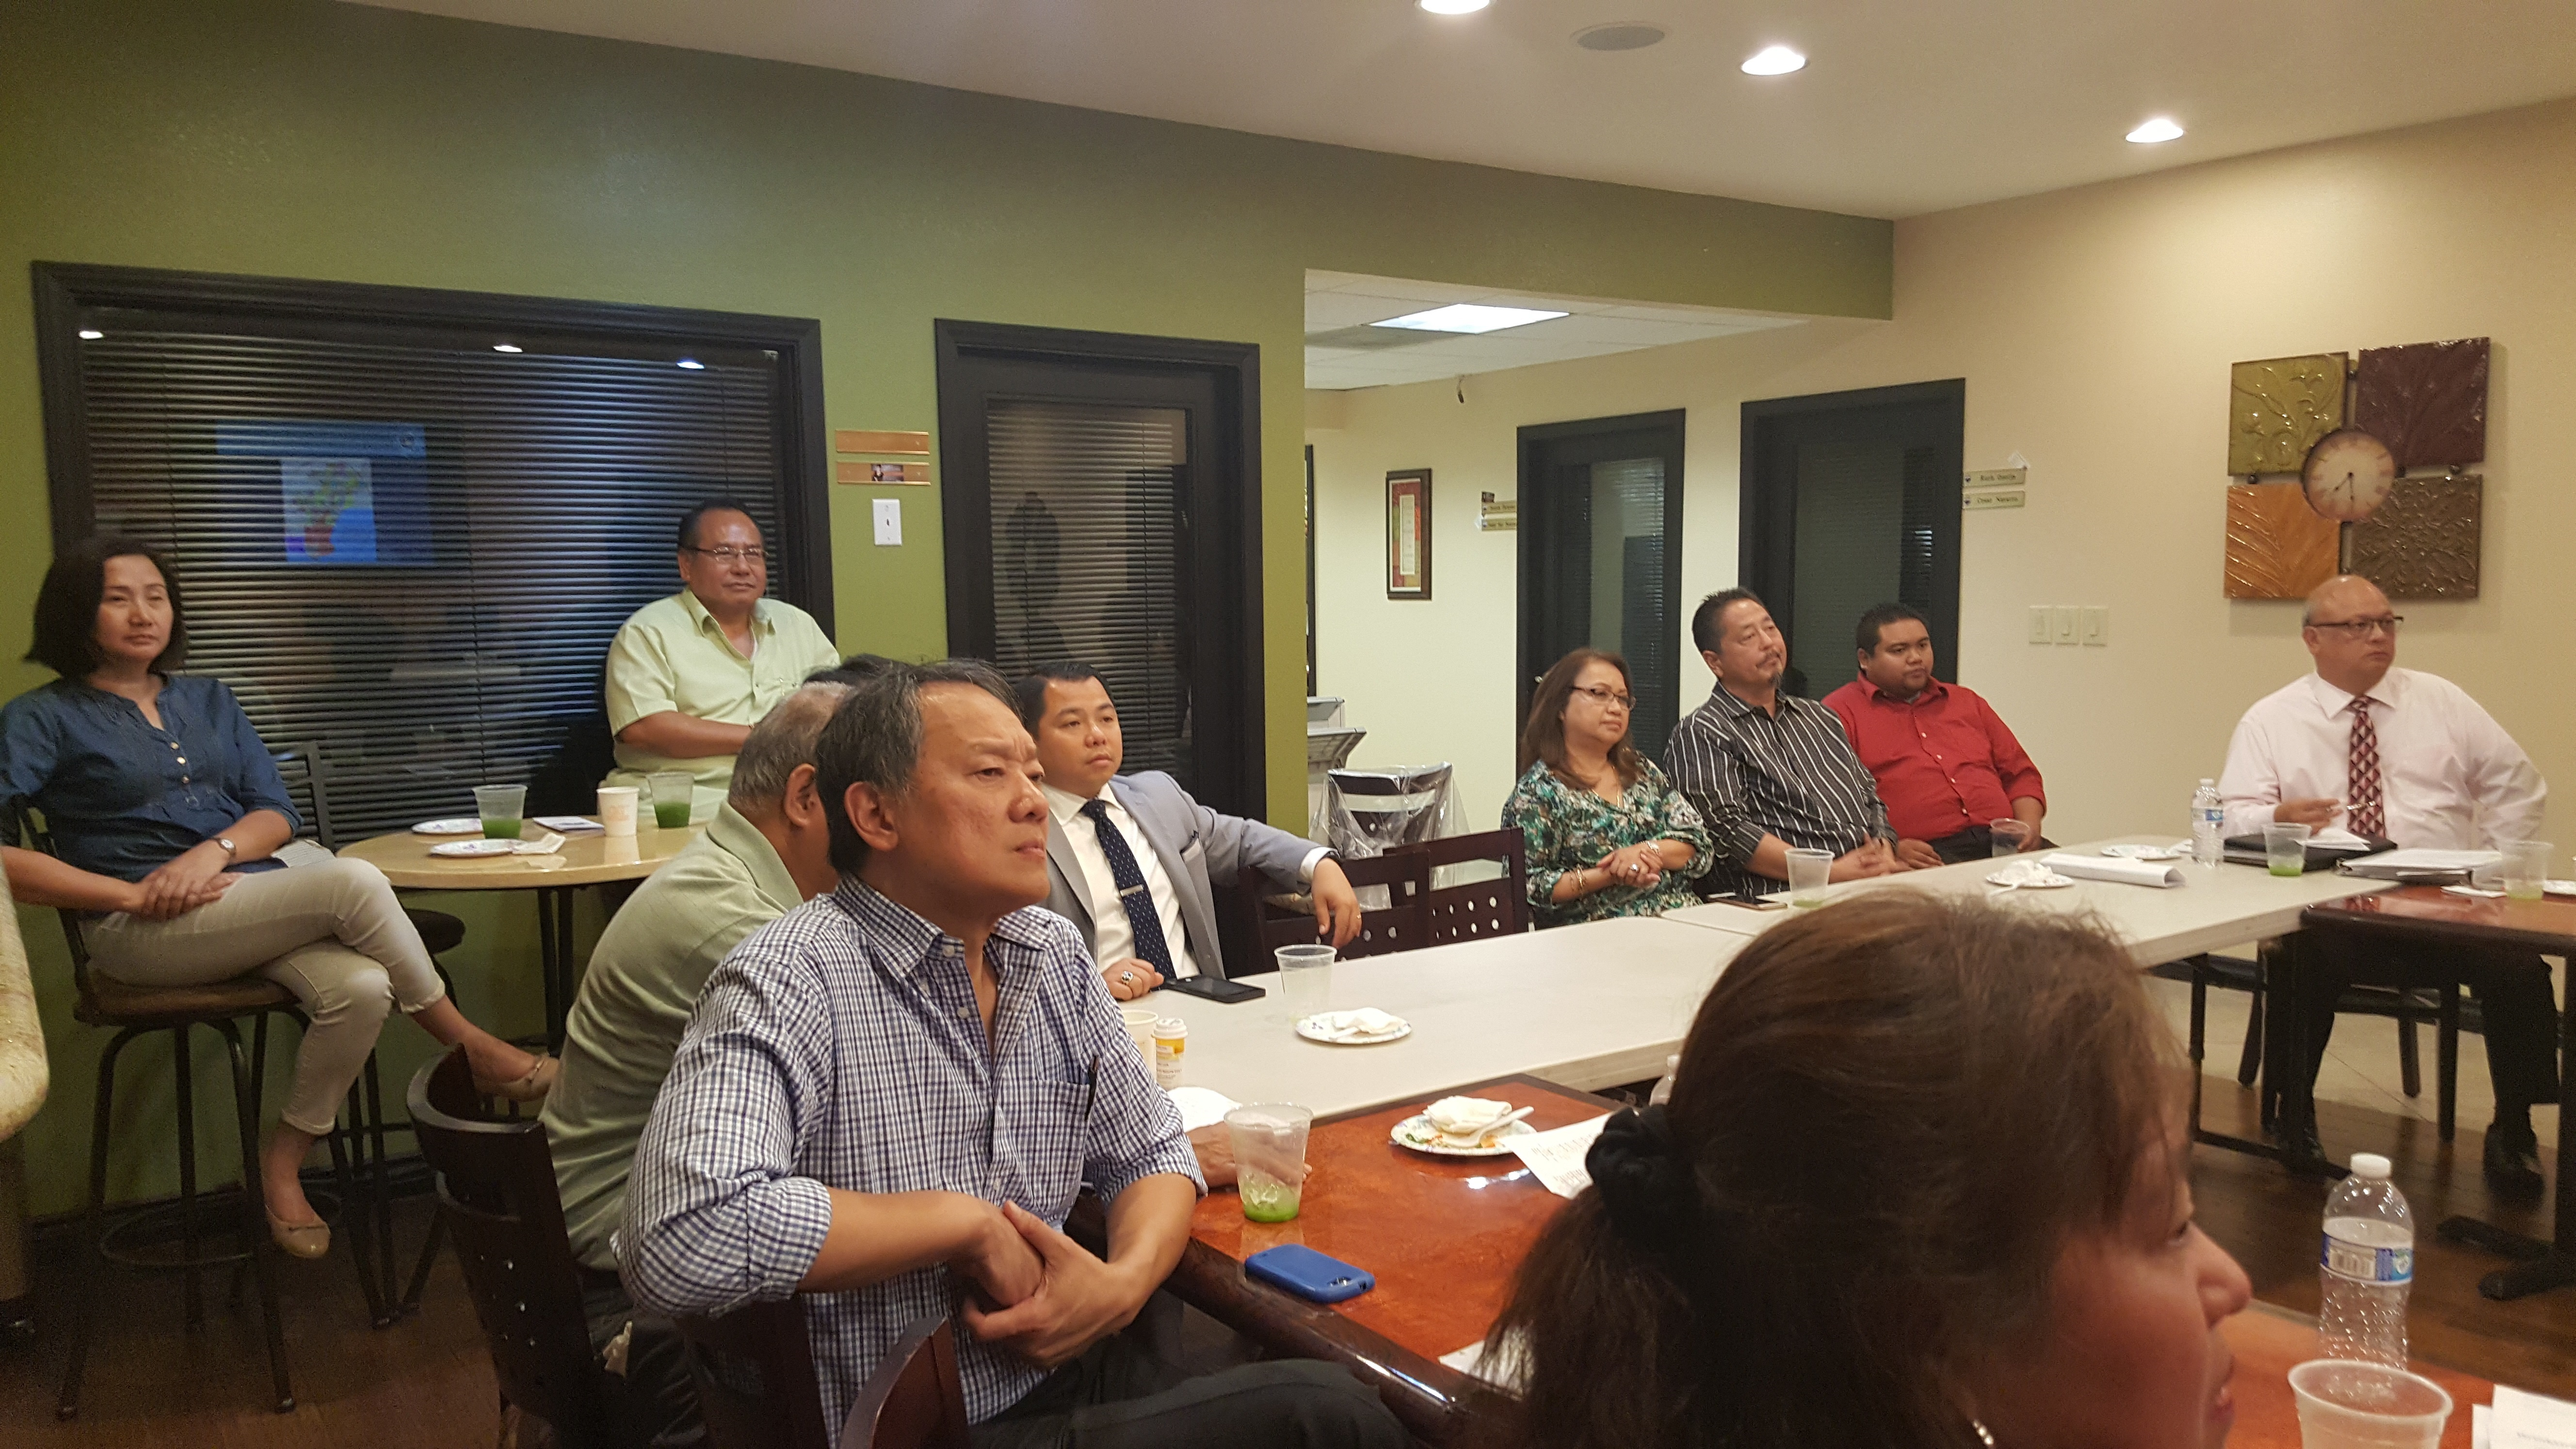 FACC GLA Promoting the Philippine Trade Mission to FACC Tri-County   August 29, 2016